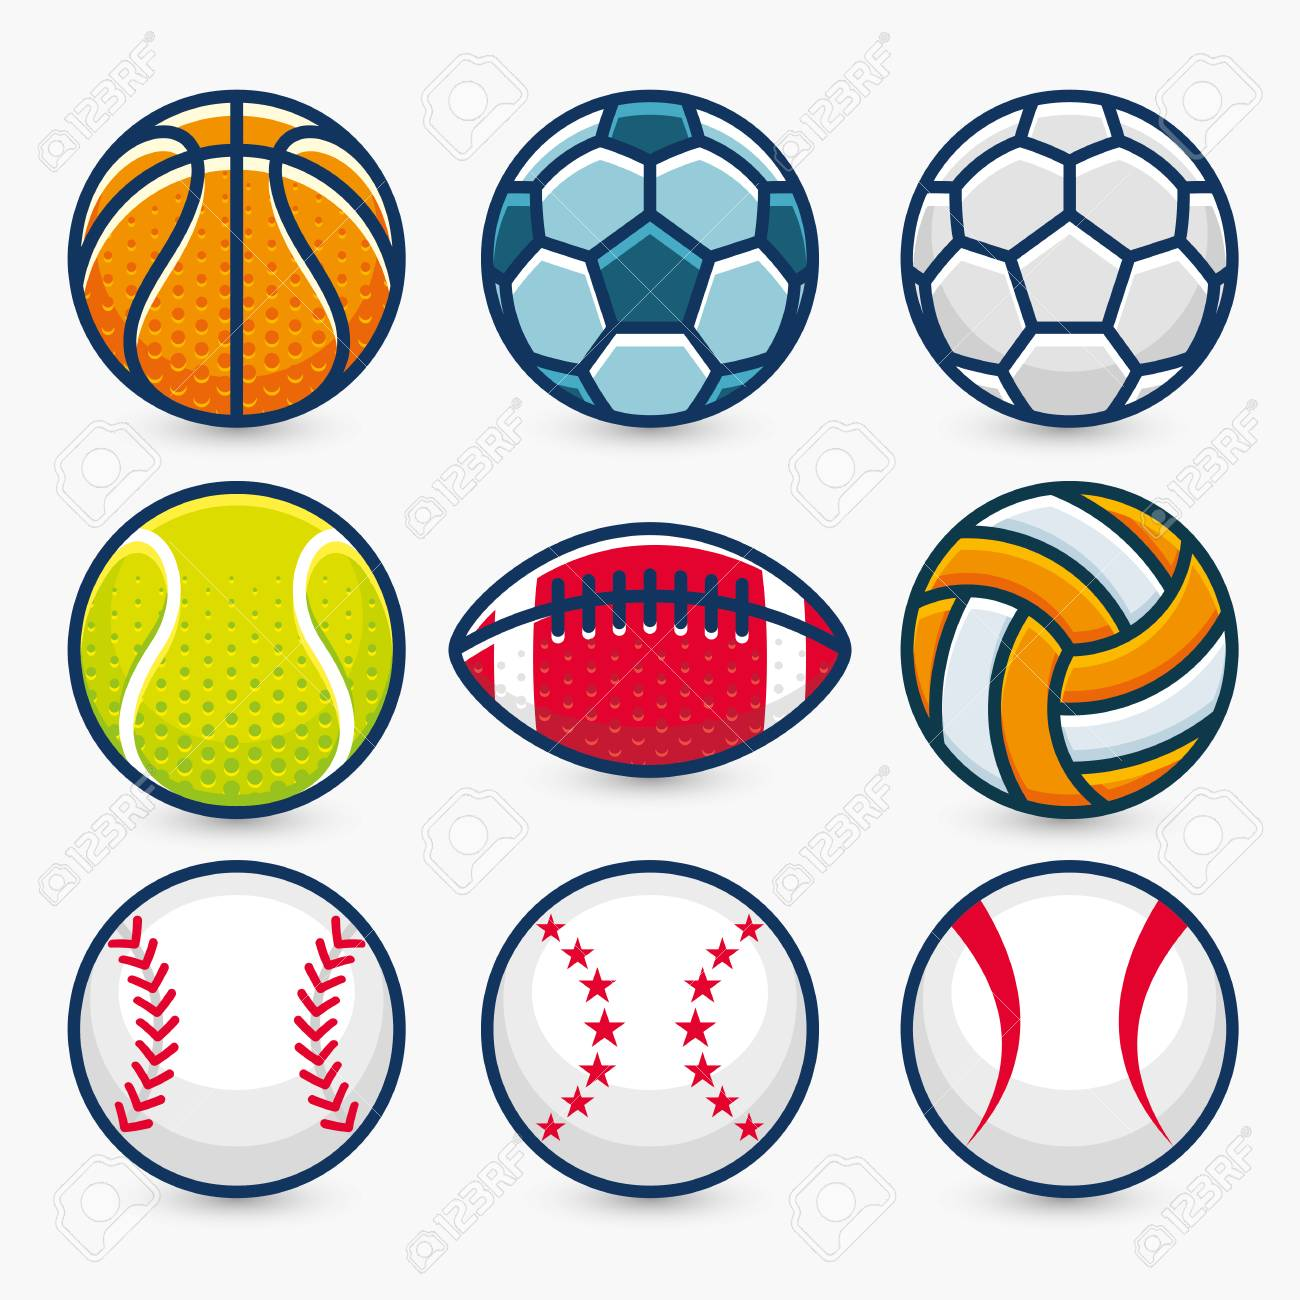 Set Of Sports Balls Vector Illustration Royalty Free Cliparts Vectors And Stock Illustration Image 50400617